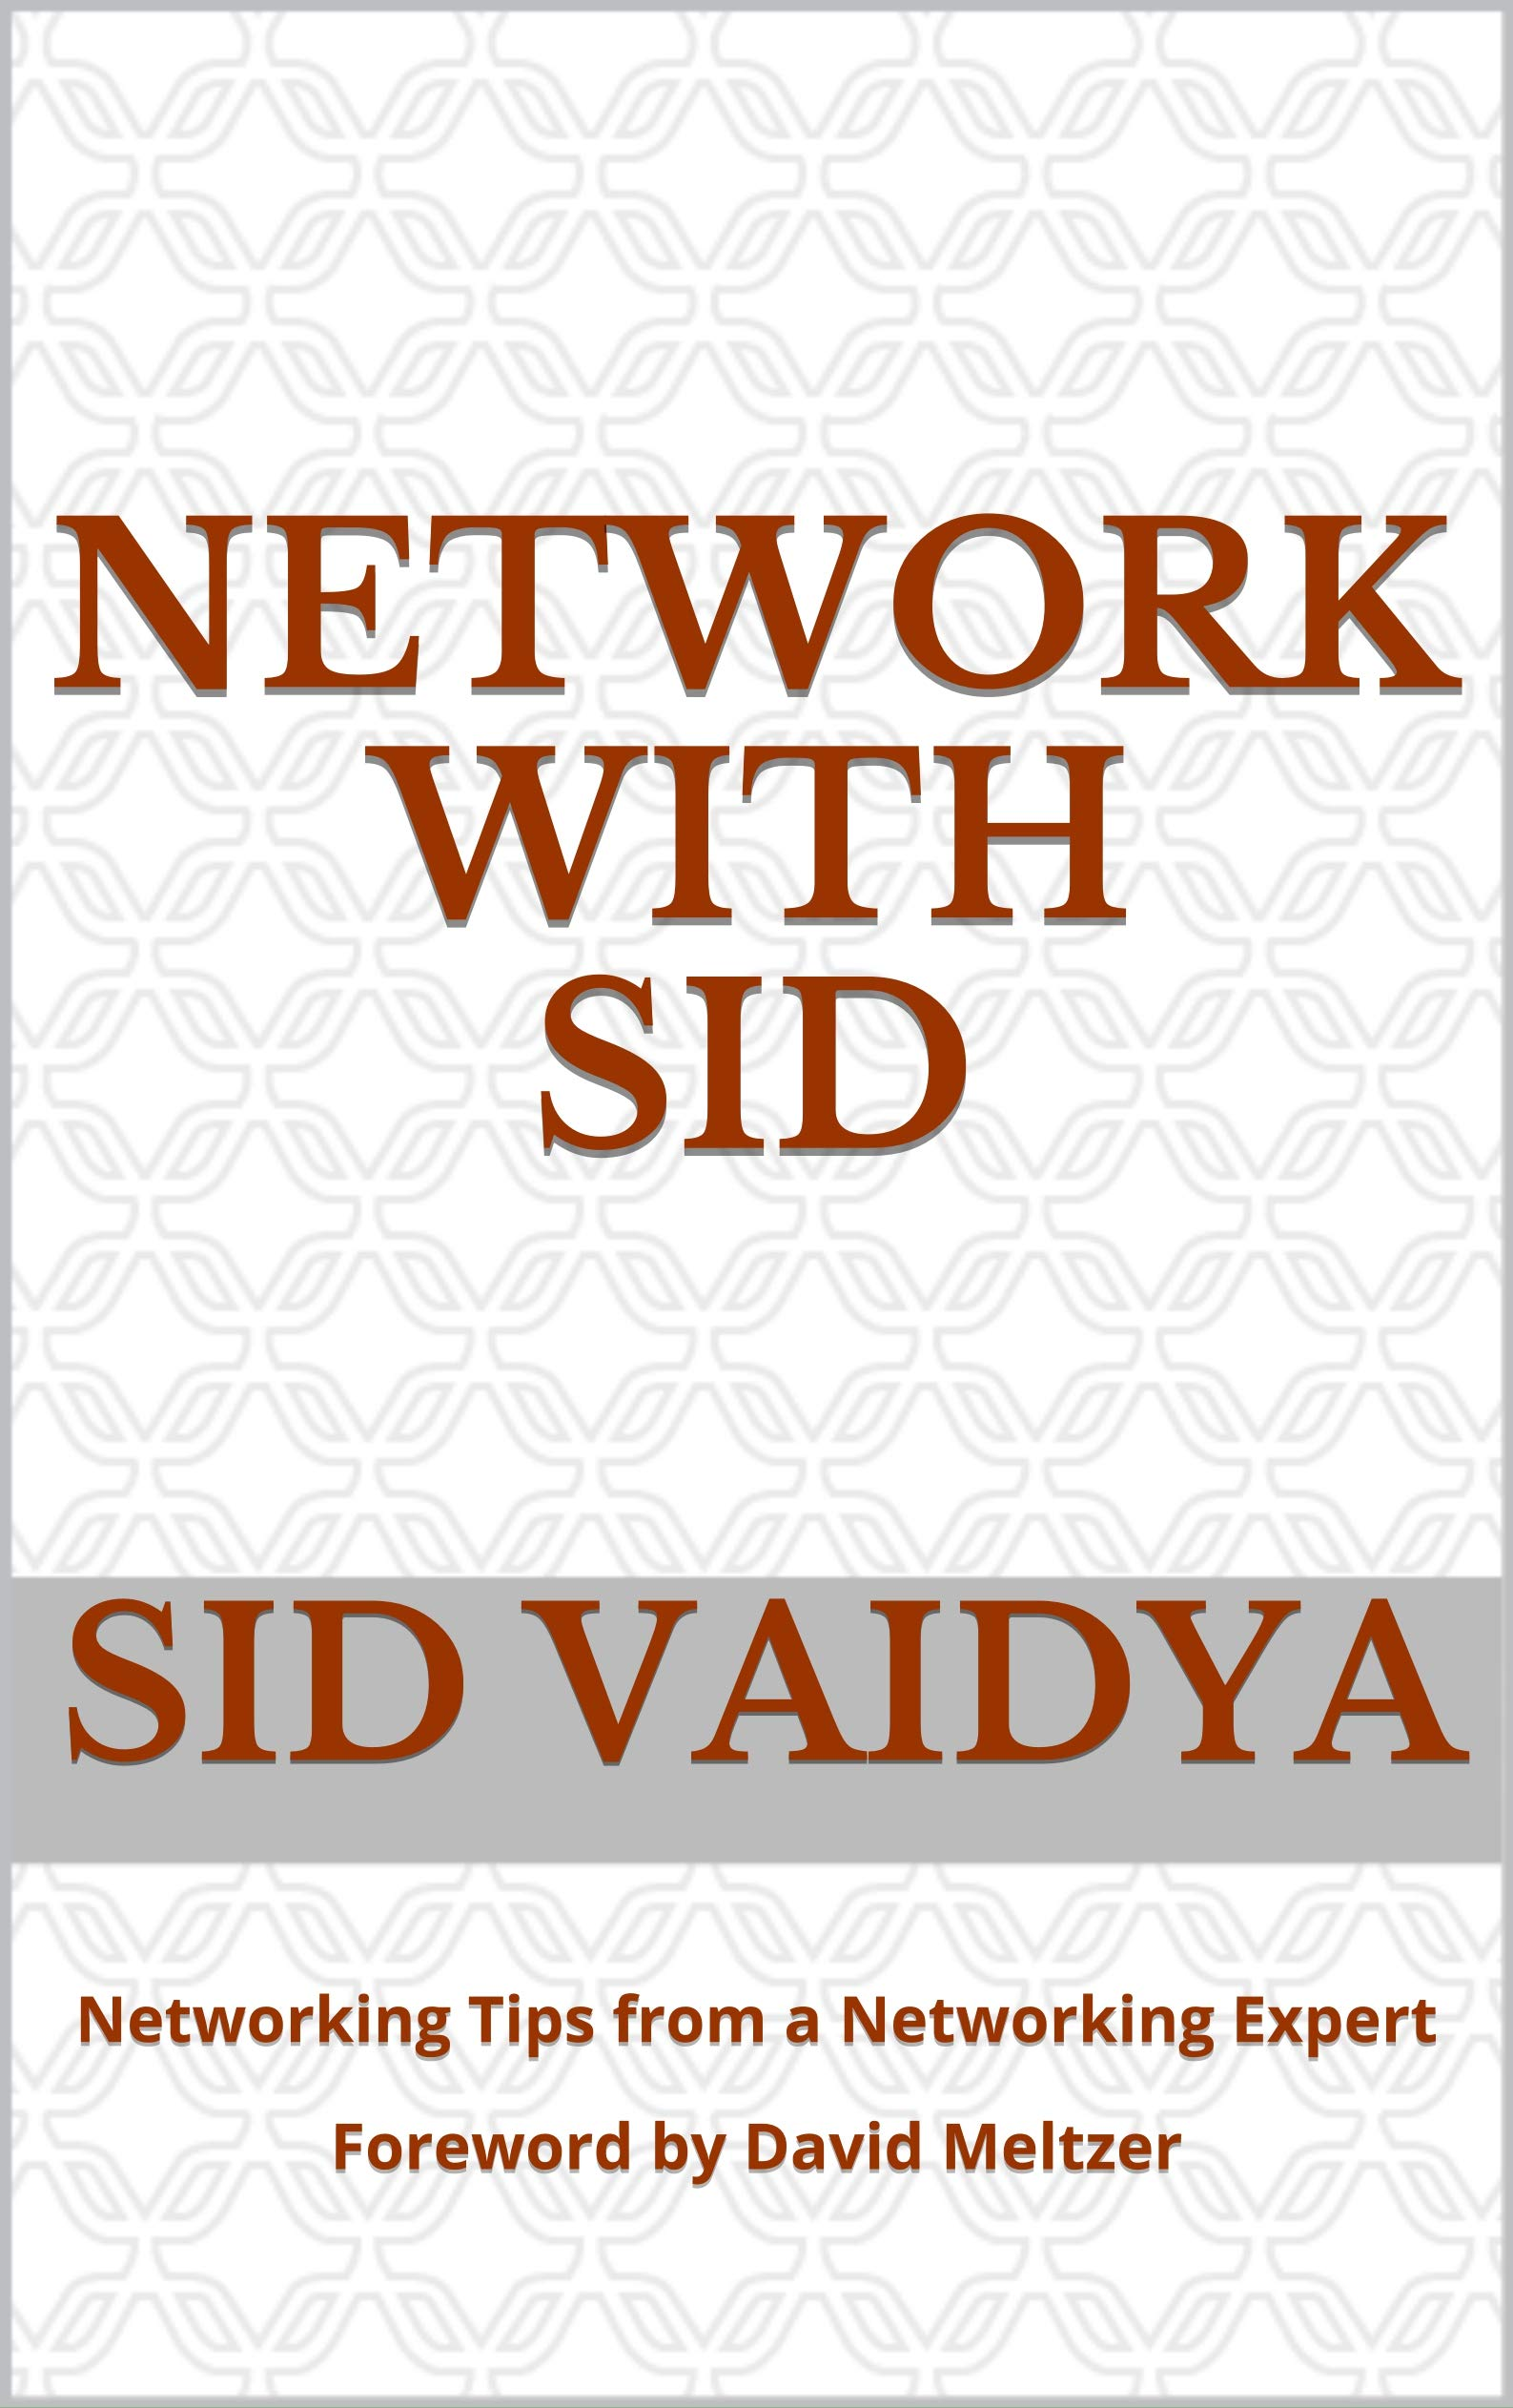 Network With Sid: Networking Tips from a Networking Expert Foreword by David Meltzer